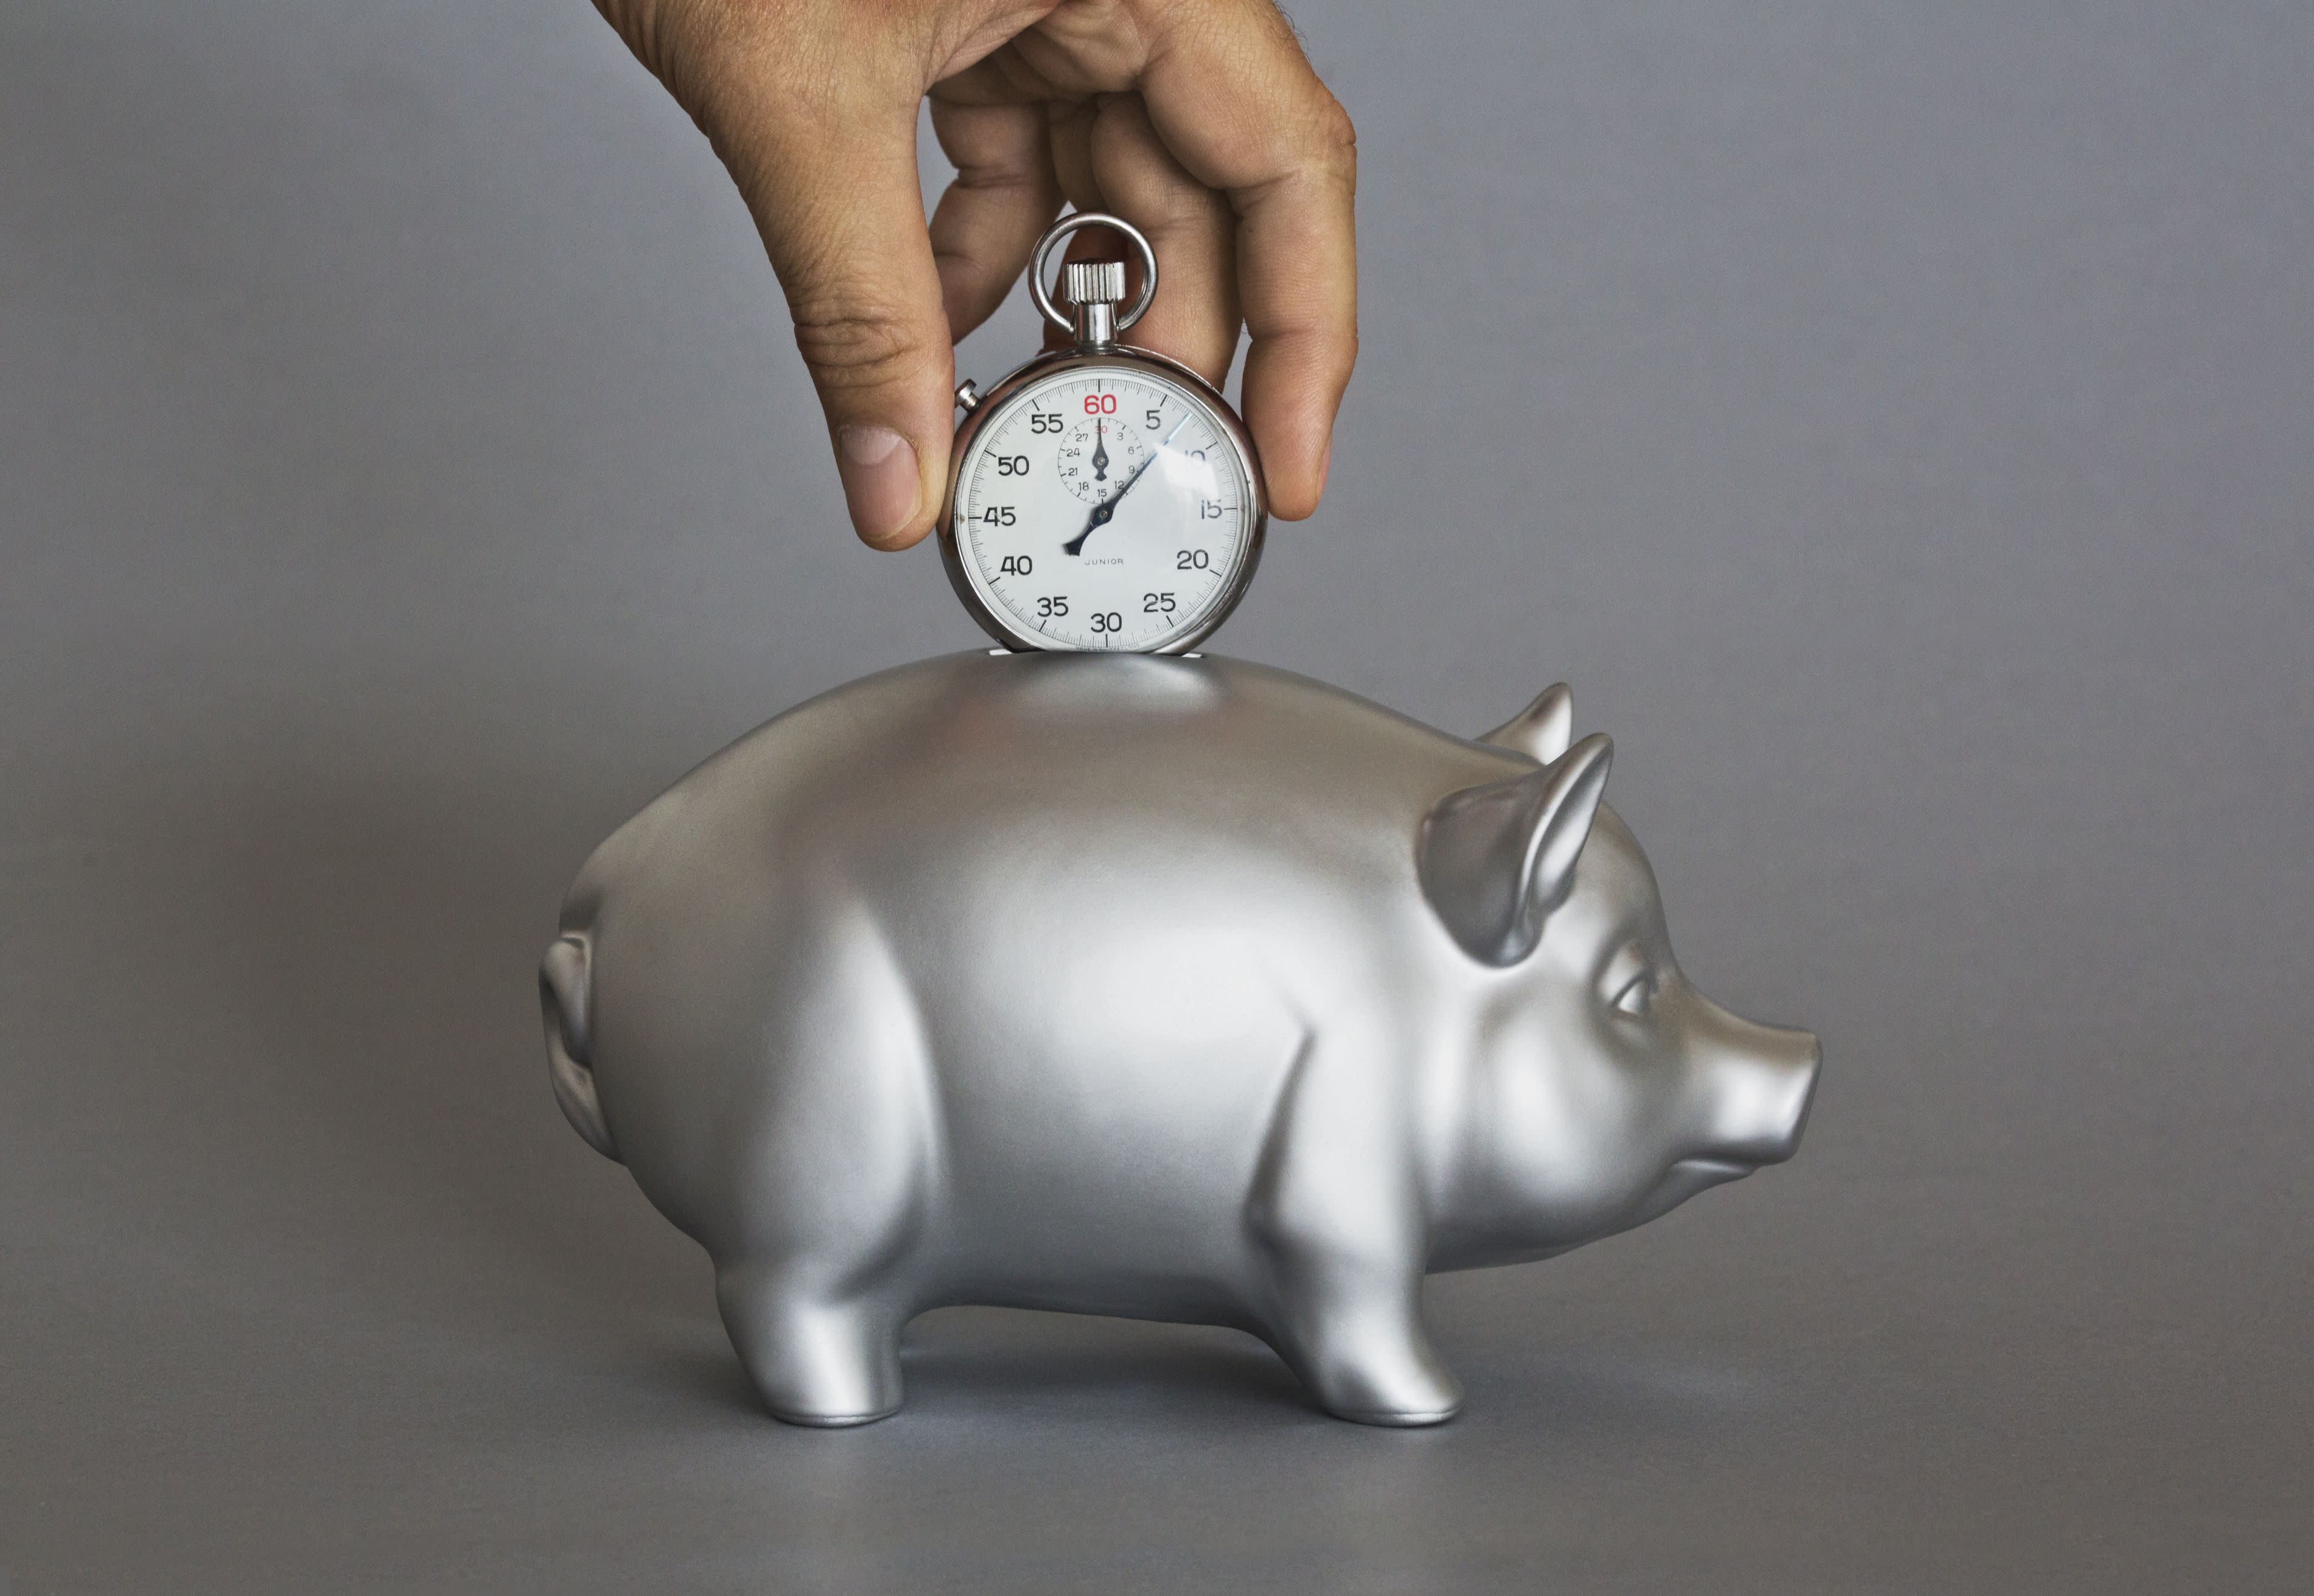 What Are the Risks of Rolling My 401(k) Into an Annuity?